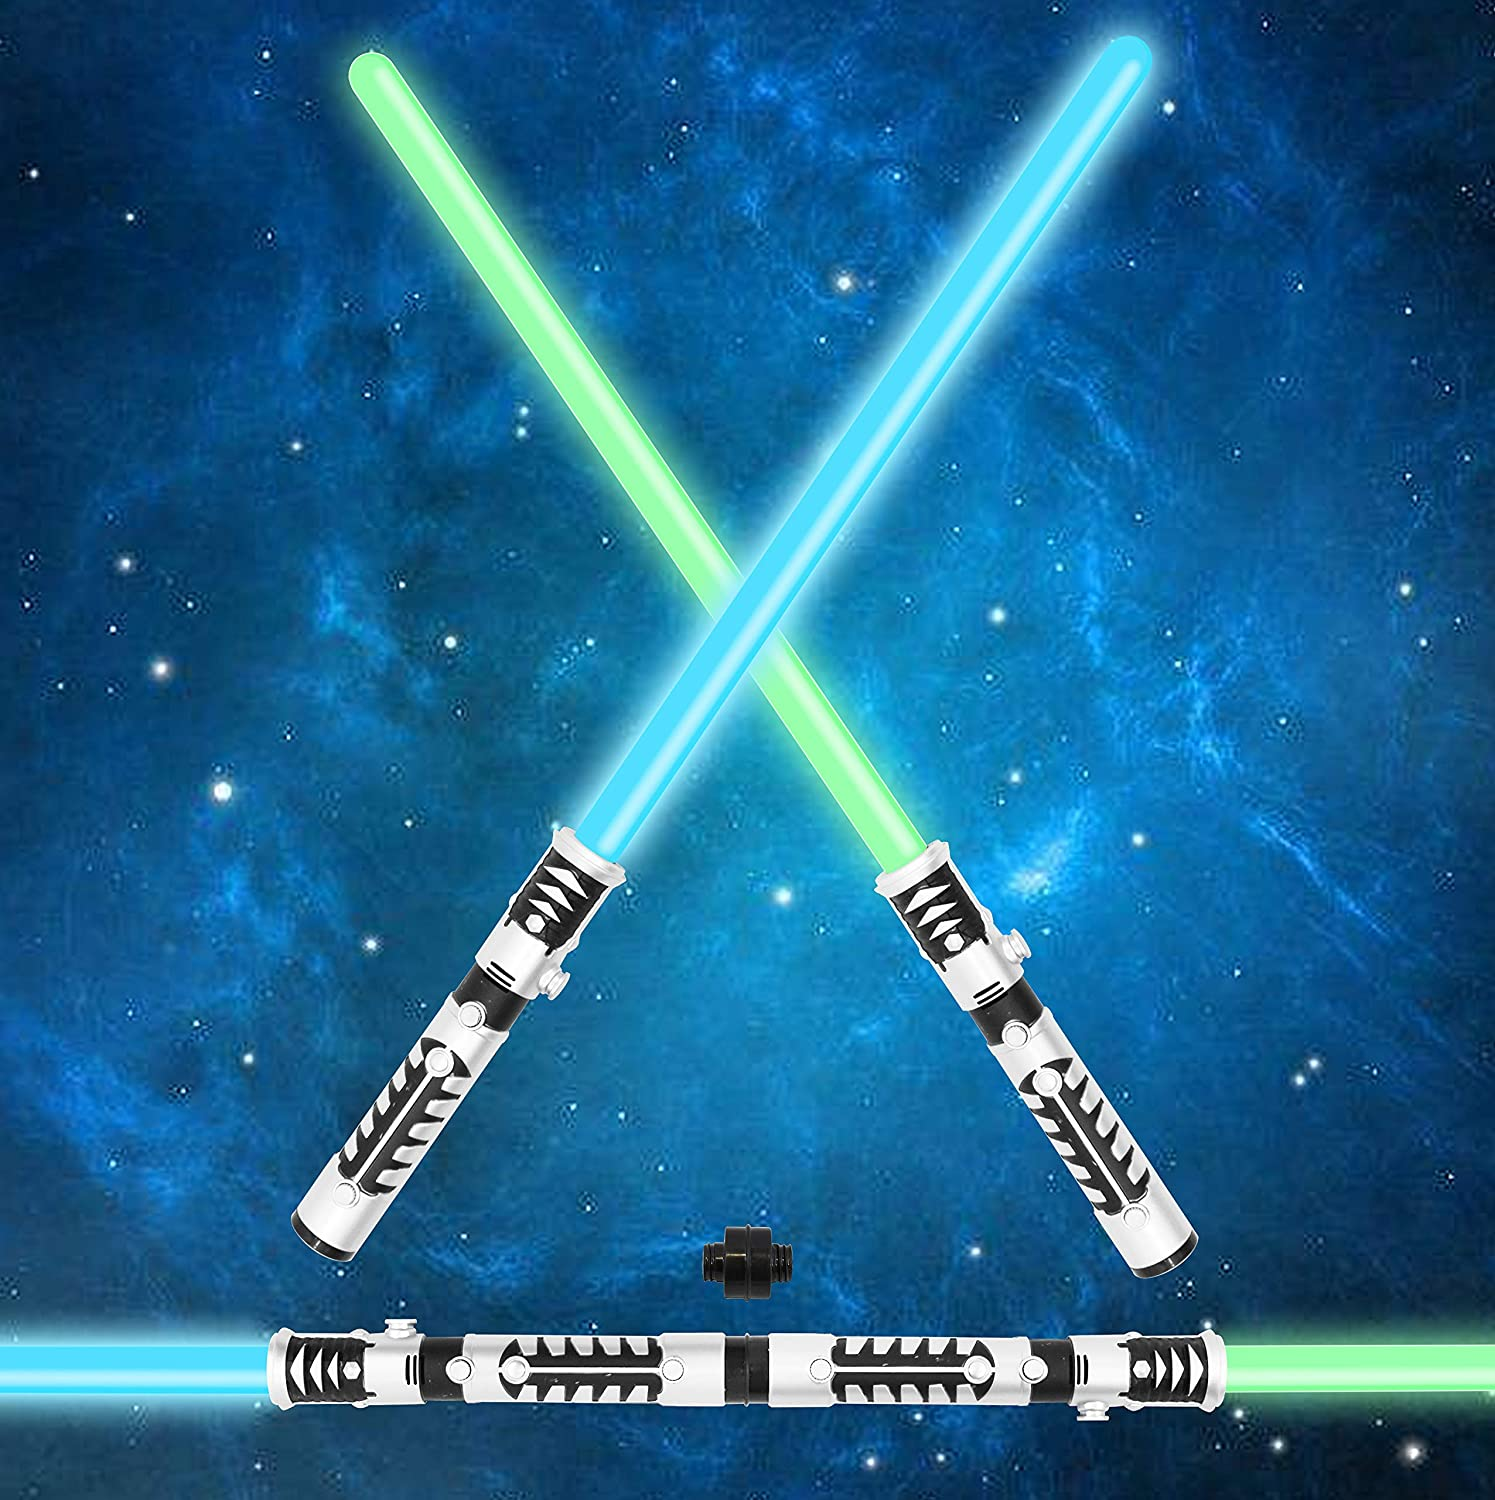 JOYIN Light Up Saber 2 in 1 LED FX Dual Laser Swords Set with Sound Motion Sensitive and Realistic Sliver Handle Stocking Idea Xmas Presents Galaxy War Fighters and Warriors